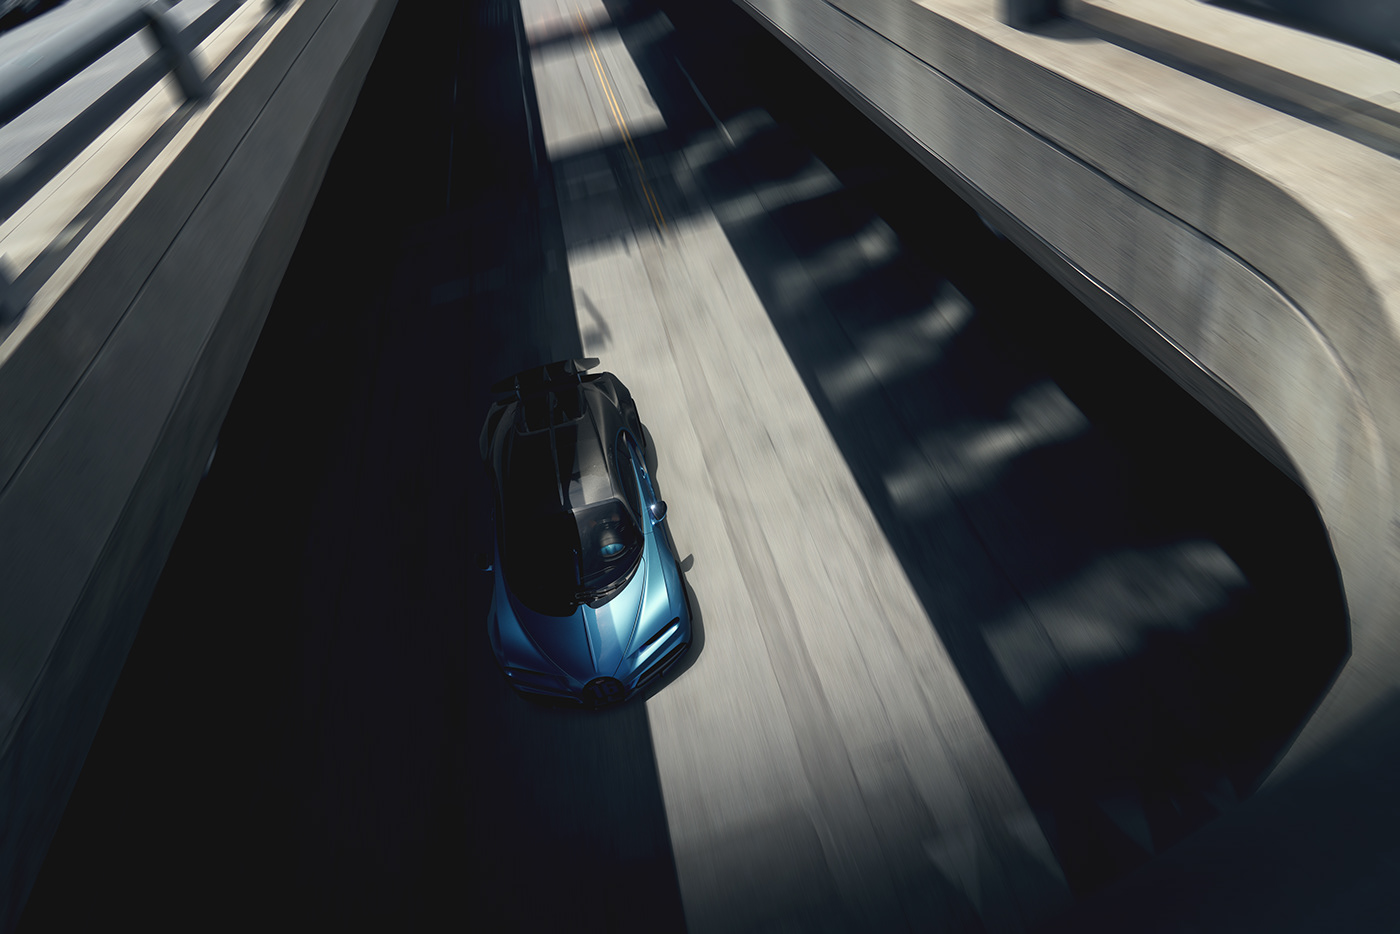 A bugatti chiron in the streets of los angeles.